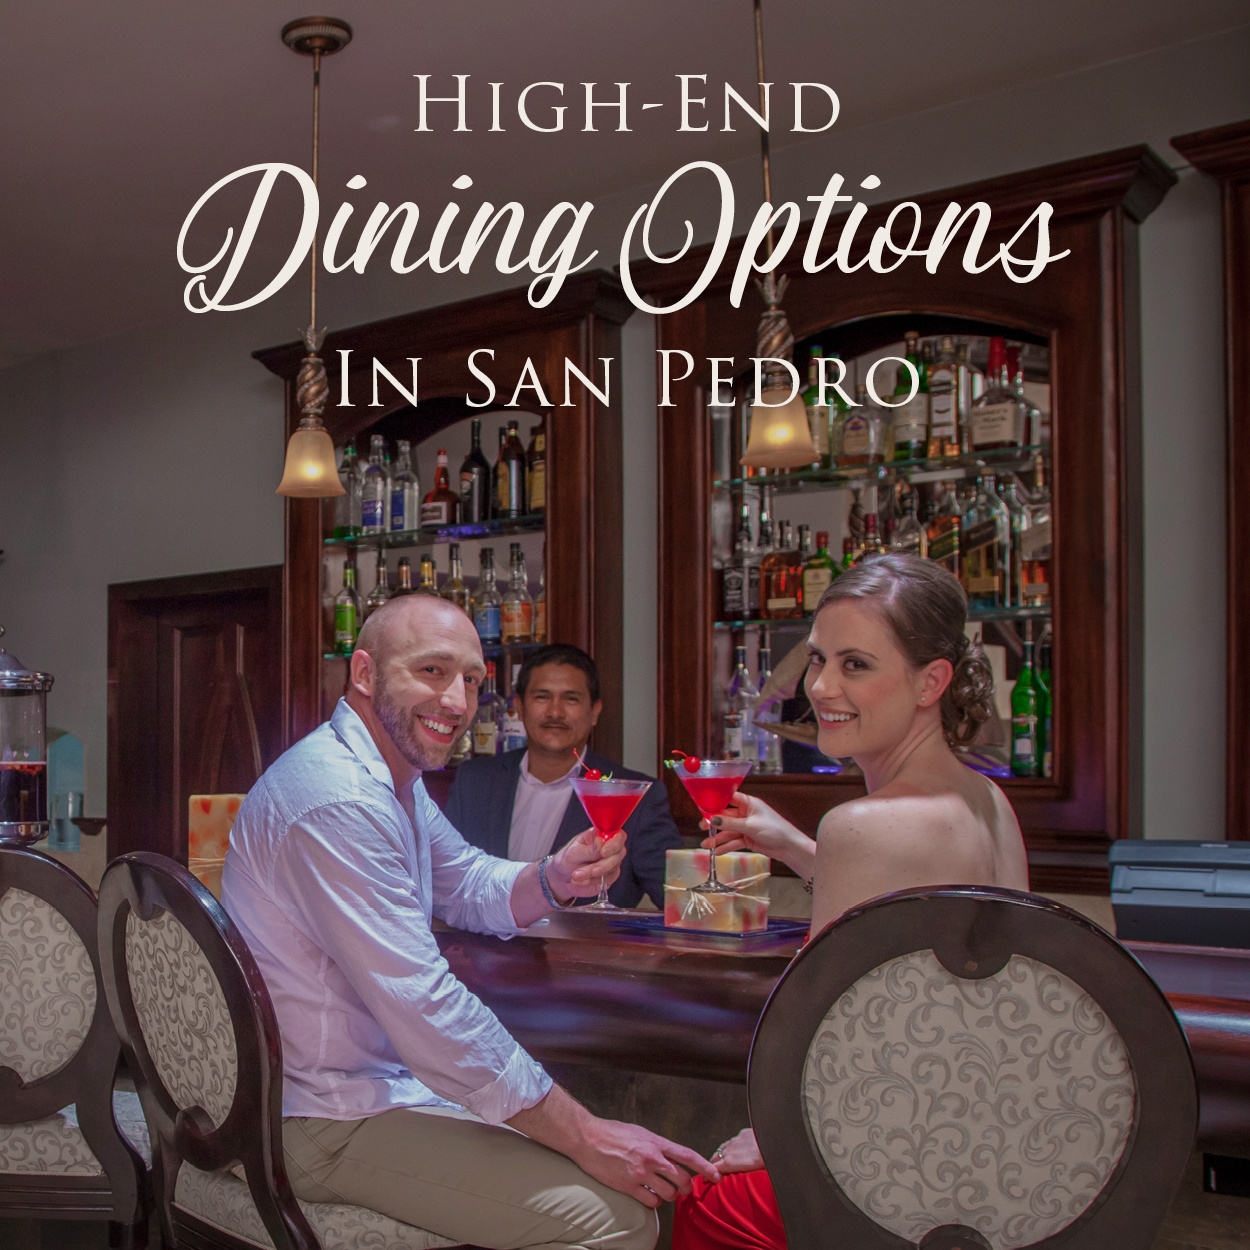 High-end-dining-options